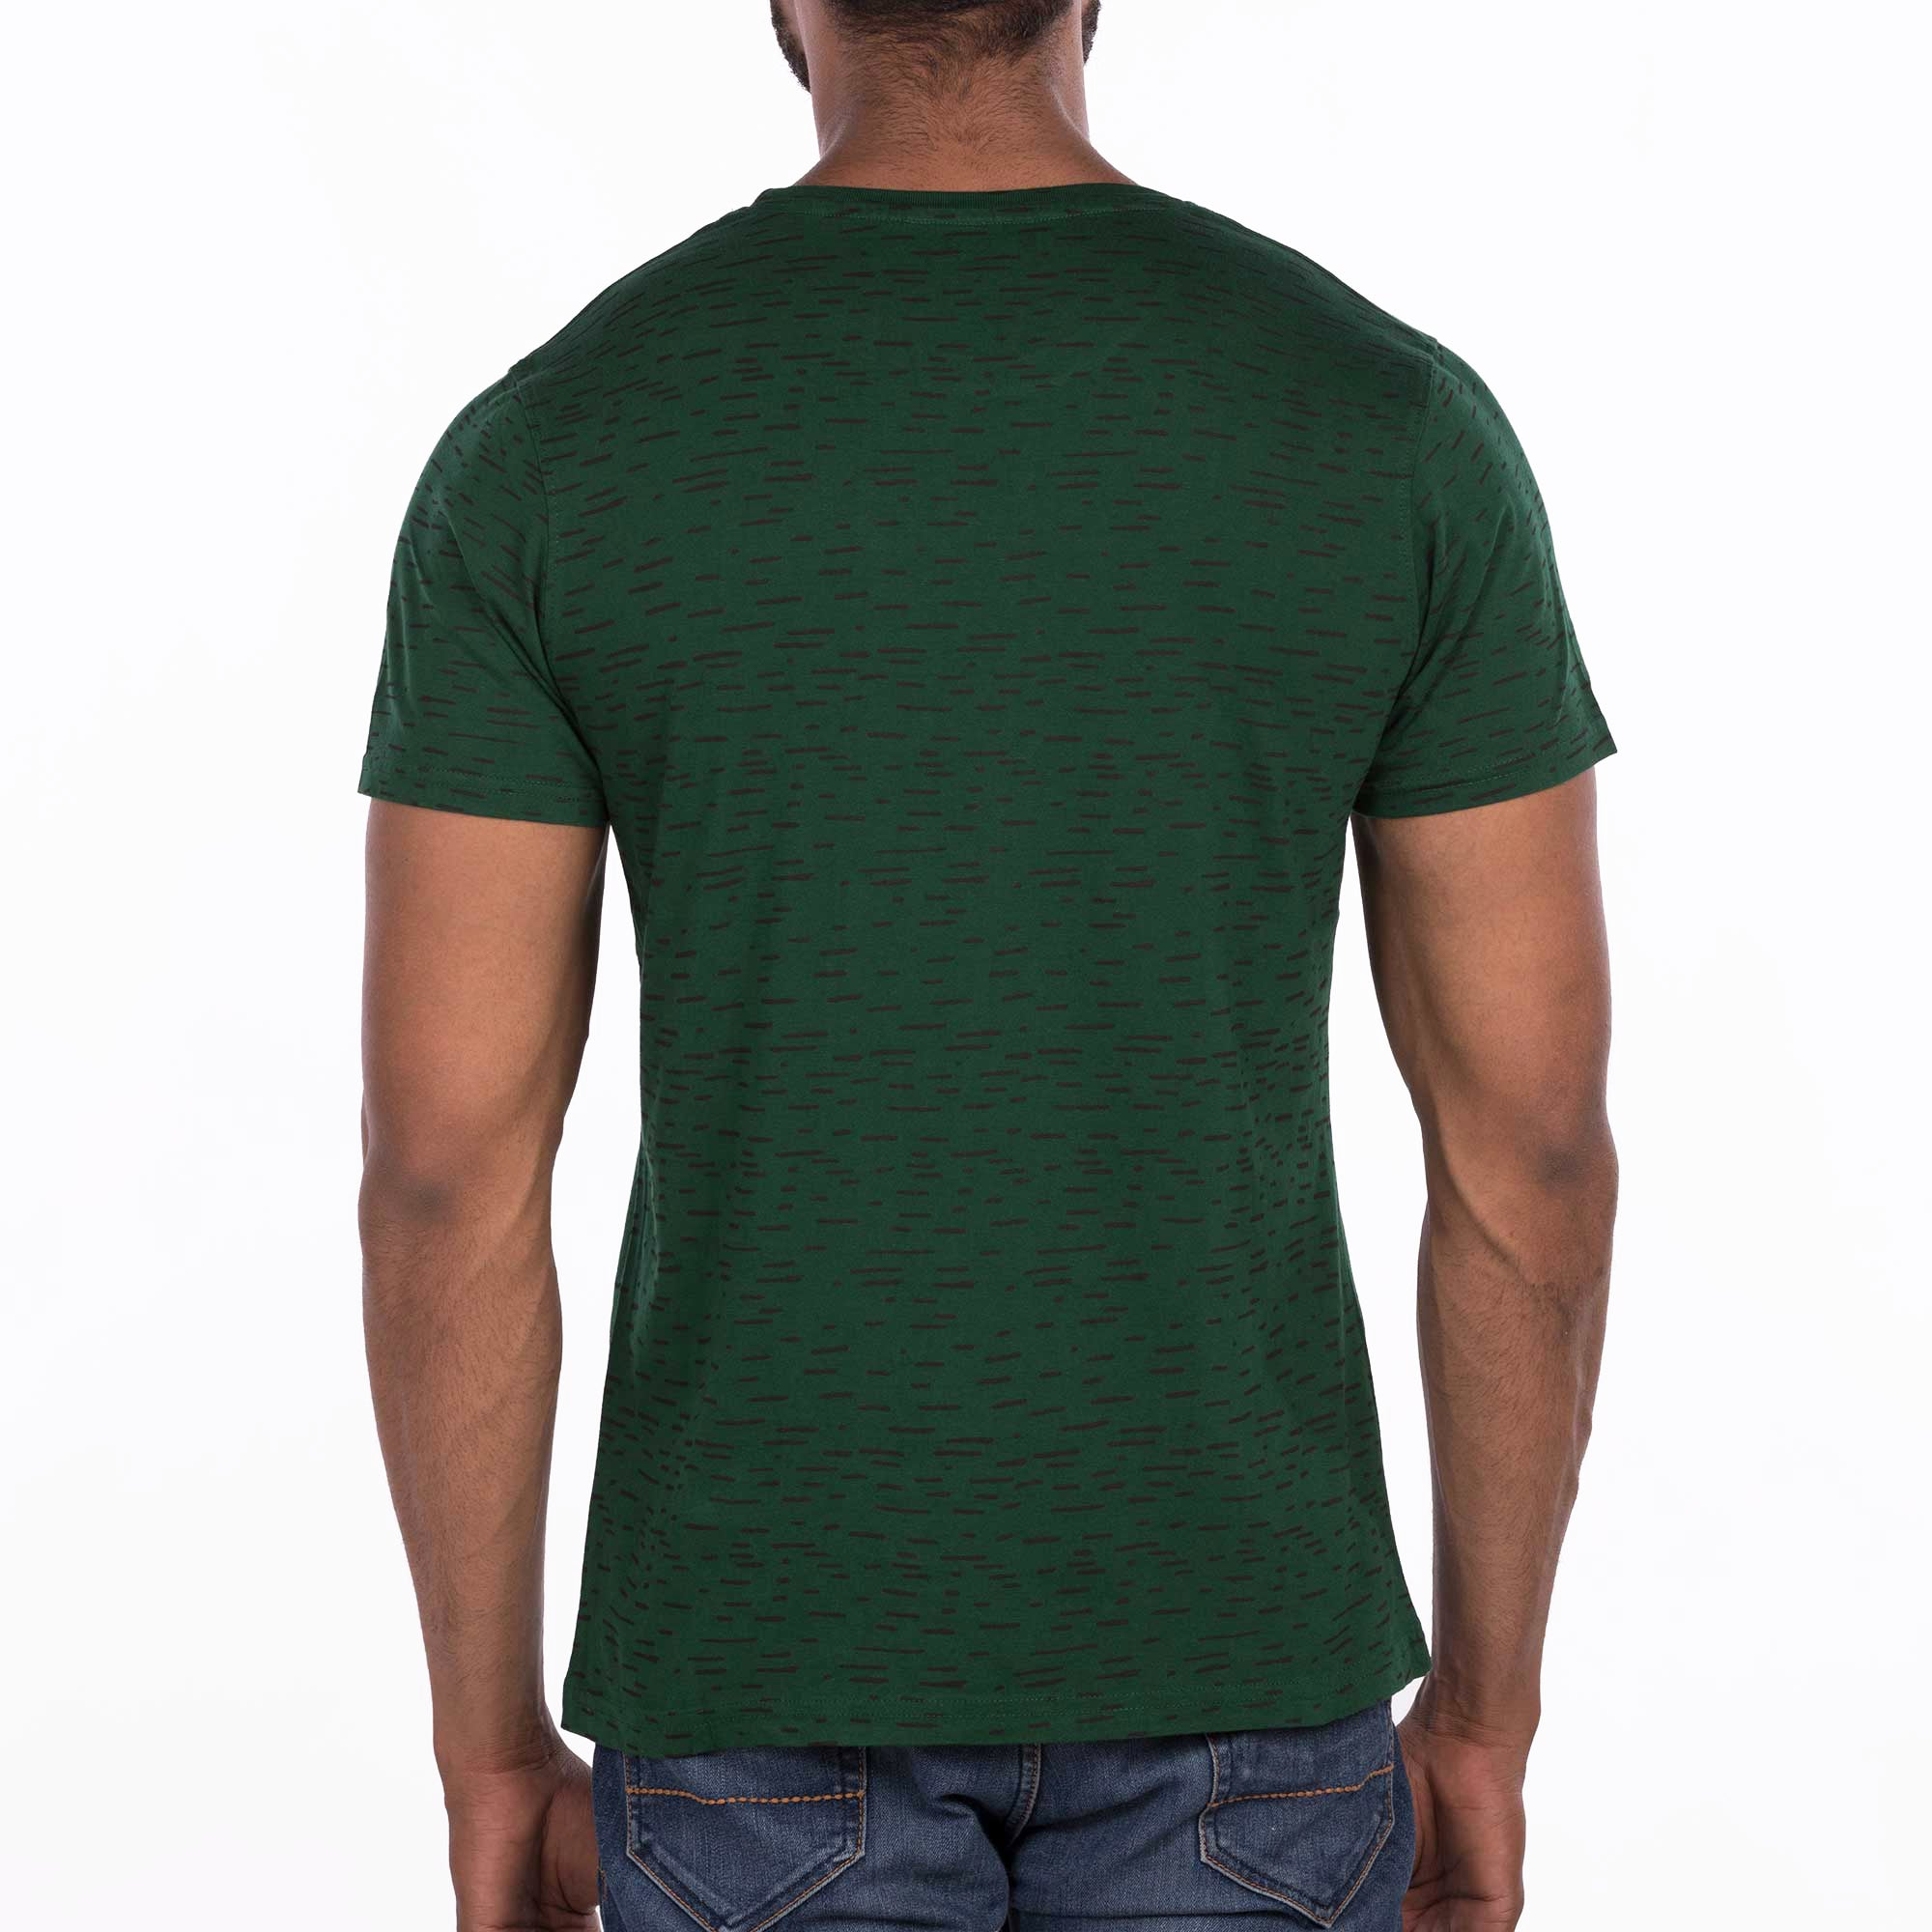 DB068 Crew Neck - Bottle Green